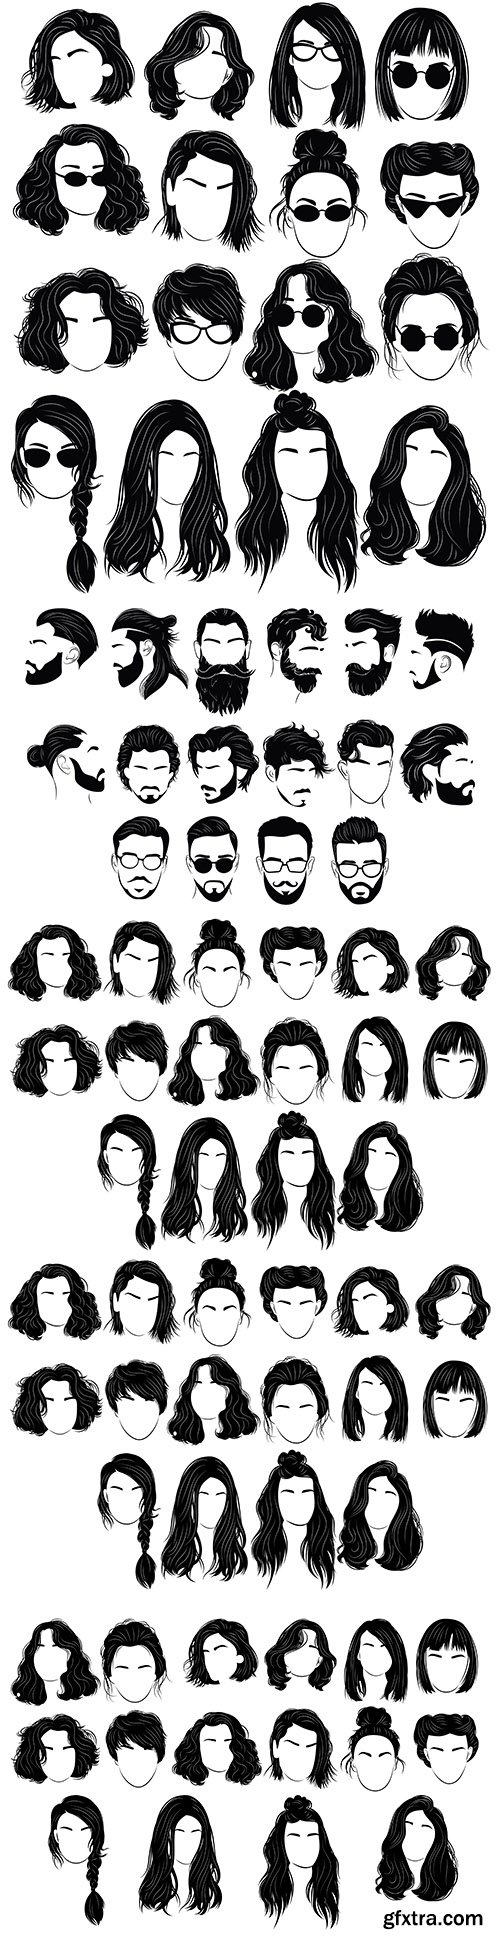 Female and male hairstyle design silhouettes